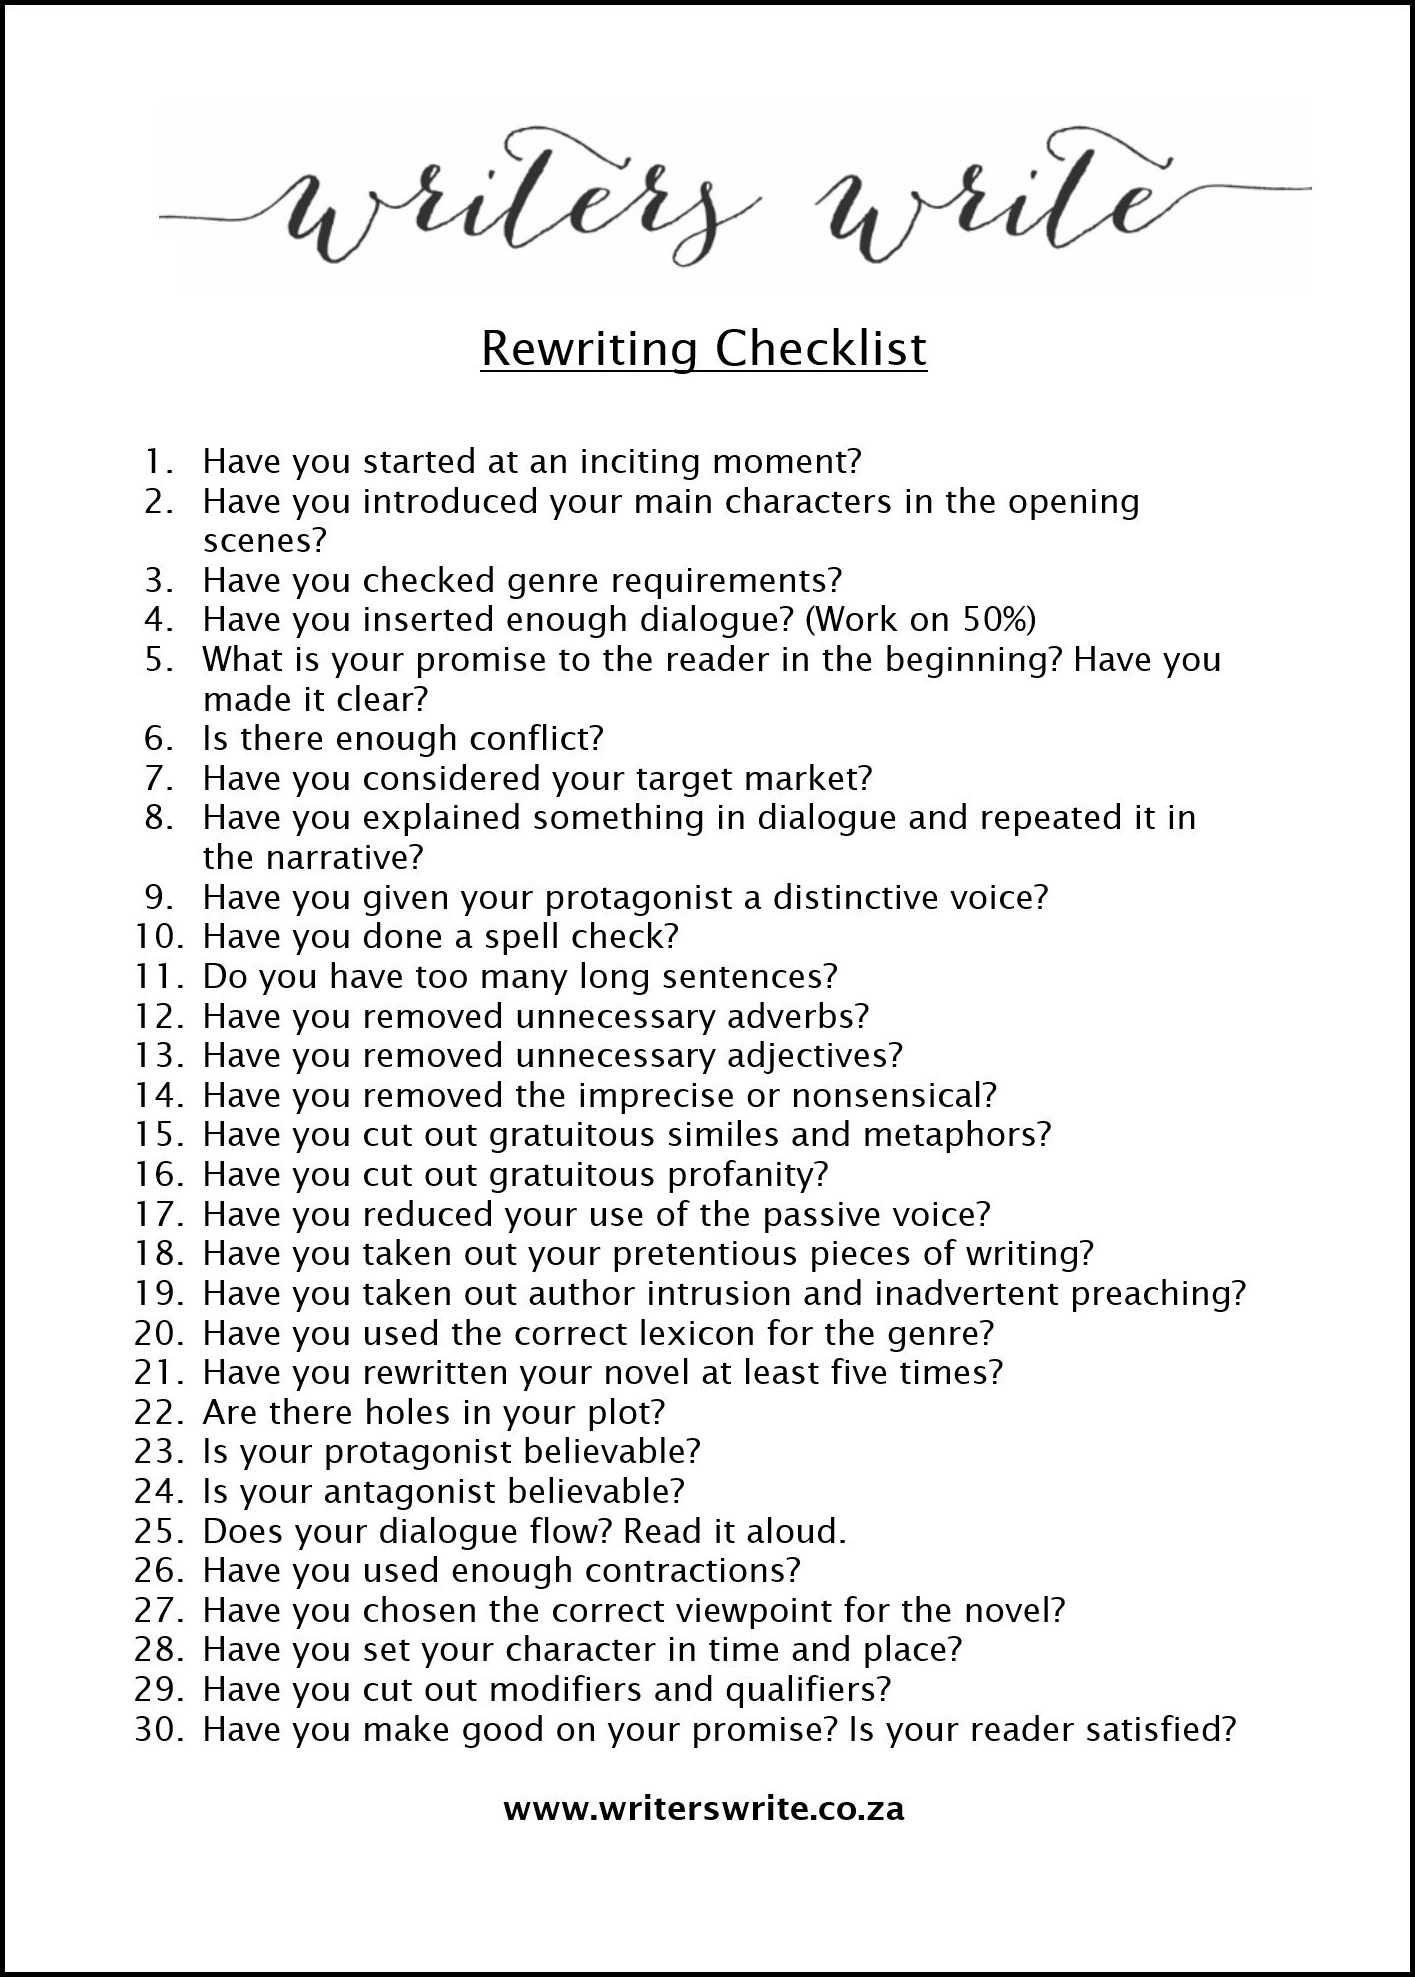 Rewriting Checklist